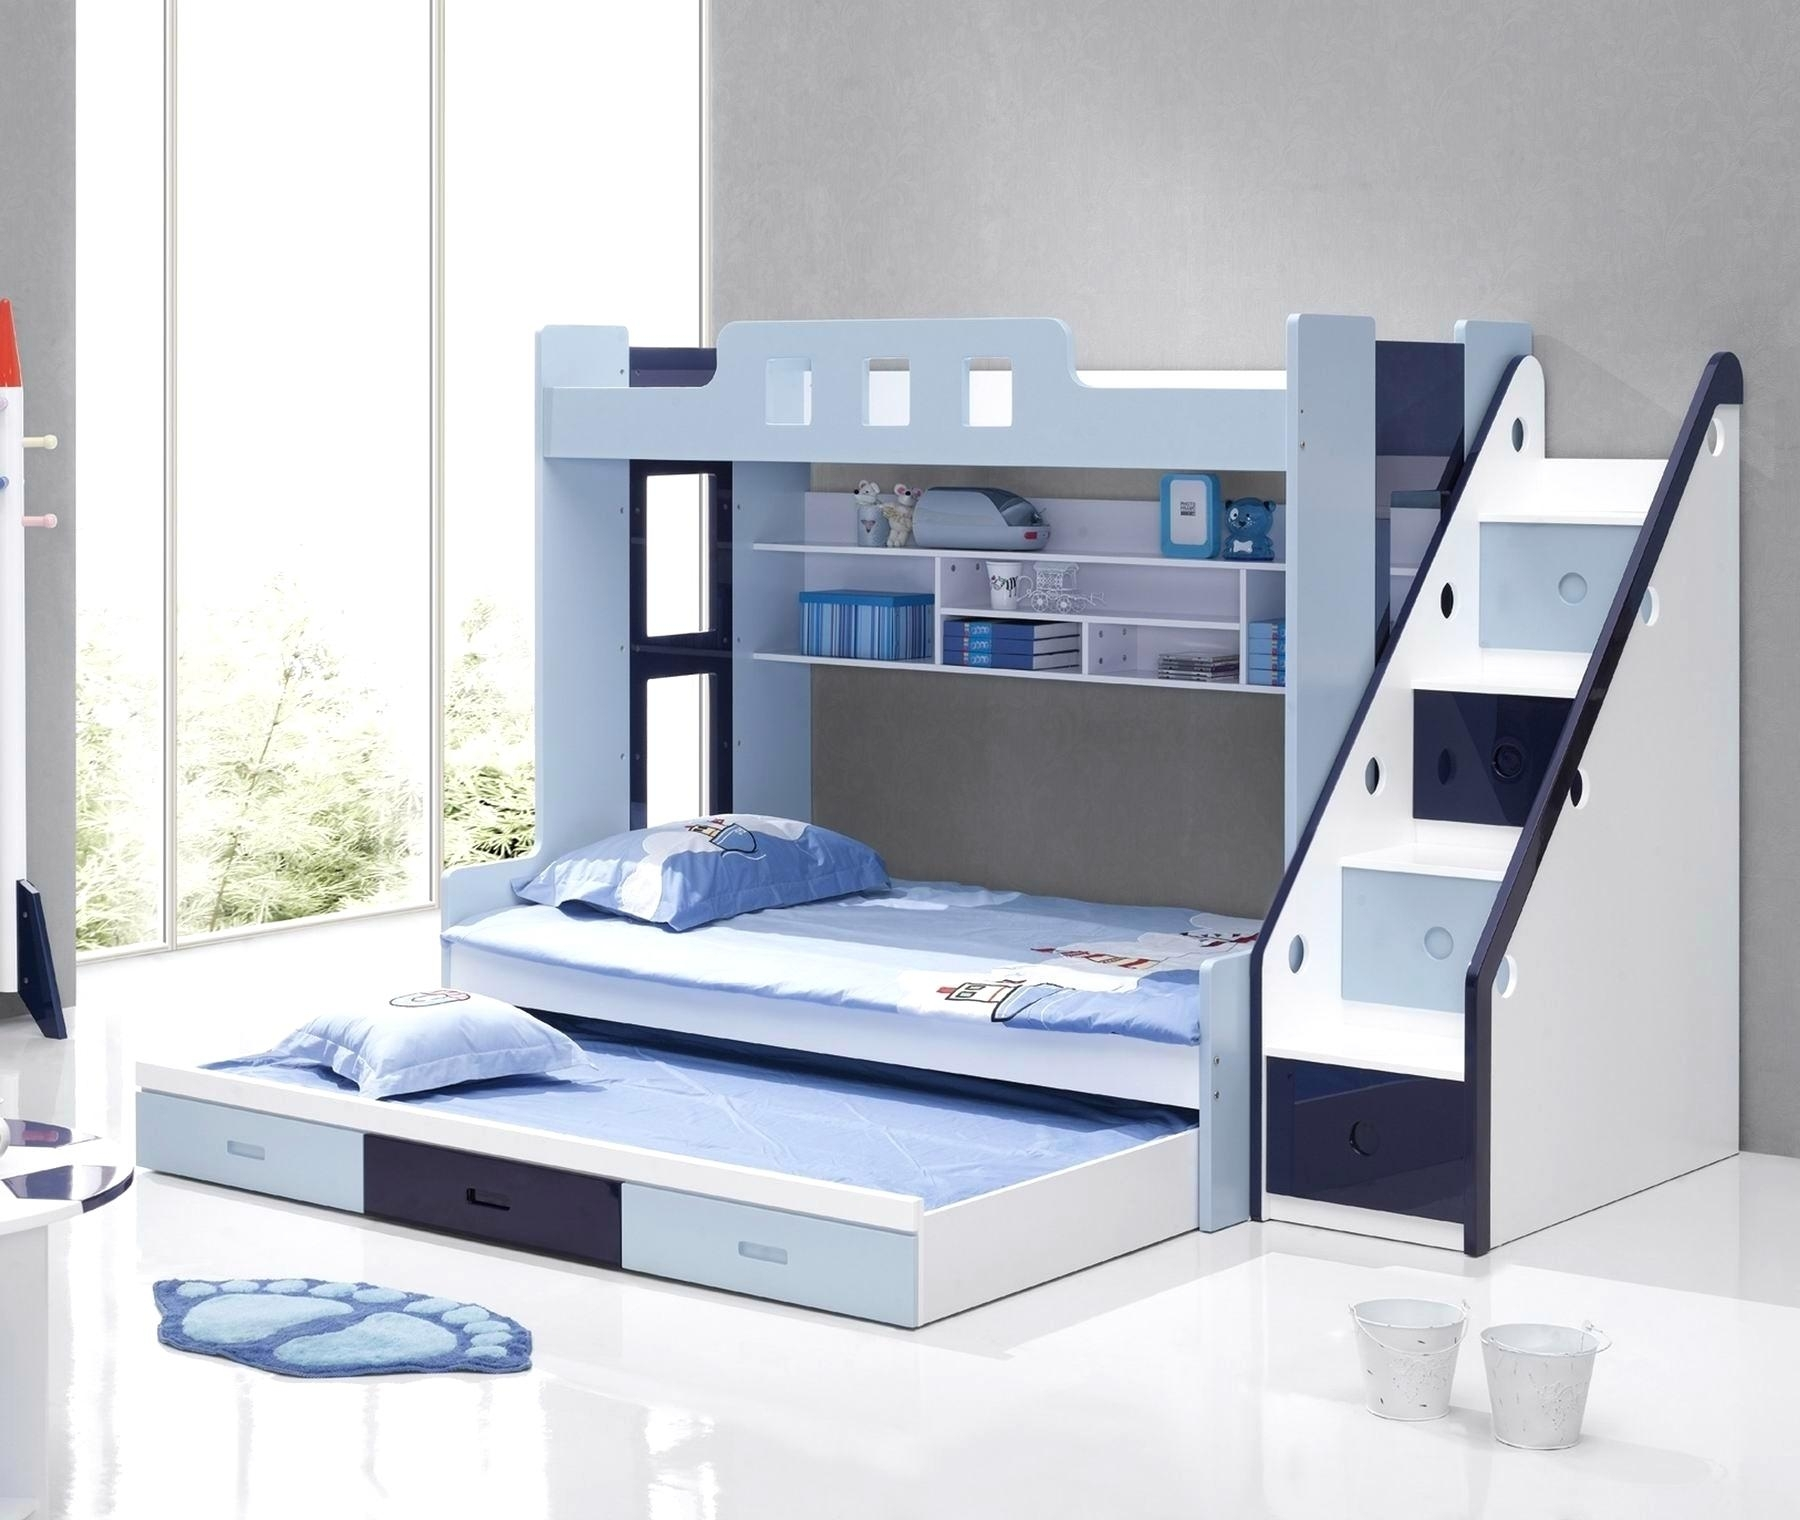 Randolph Indoor and Outdoor Design & Really Cool Bunk Beds For Teens \u2014 Randolph Indoor and Outdoor Design